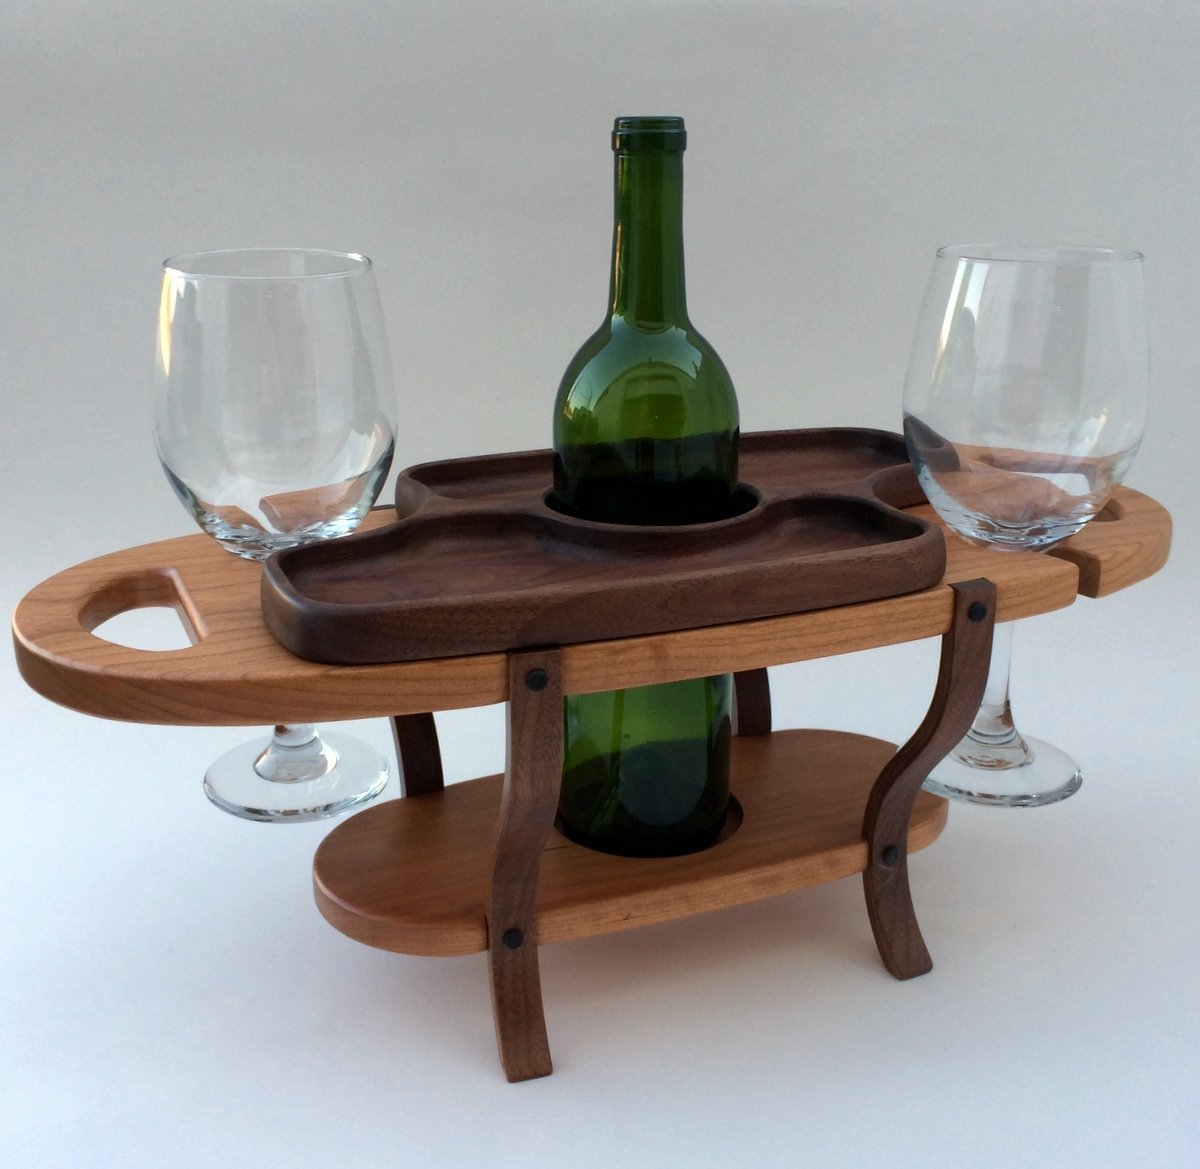 Handmade wood wine caddy, tabletop wine bottle rack, wine glass holder